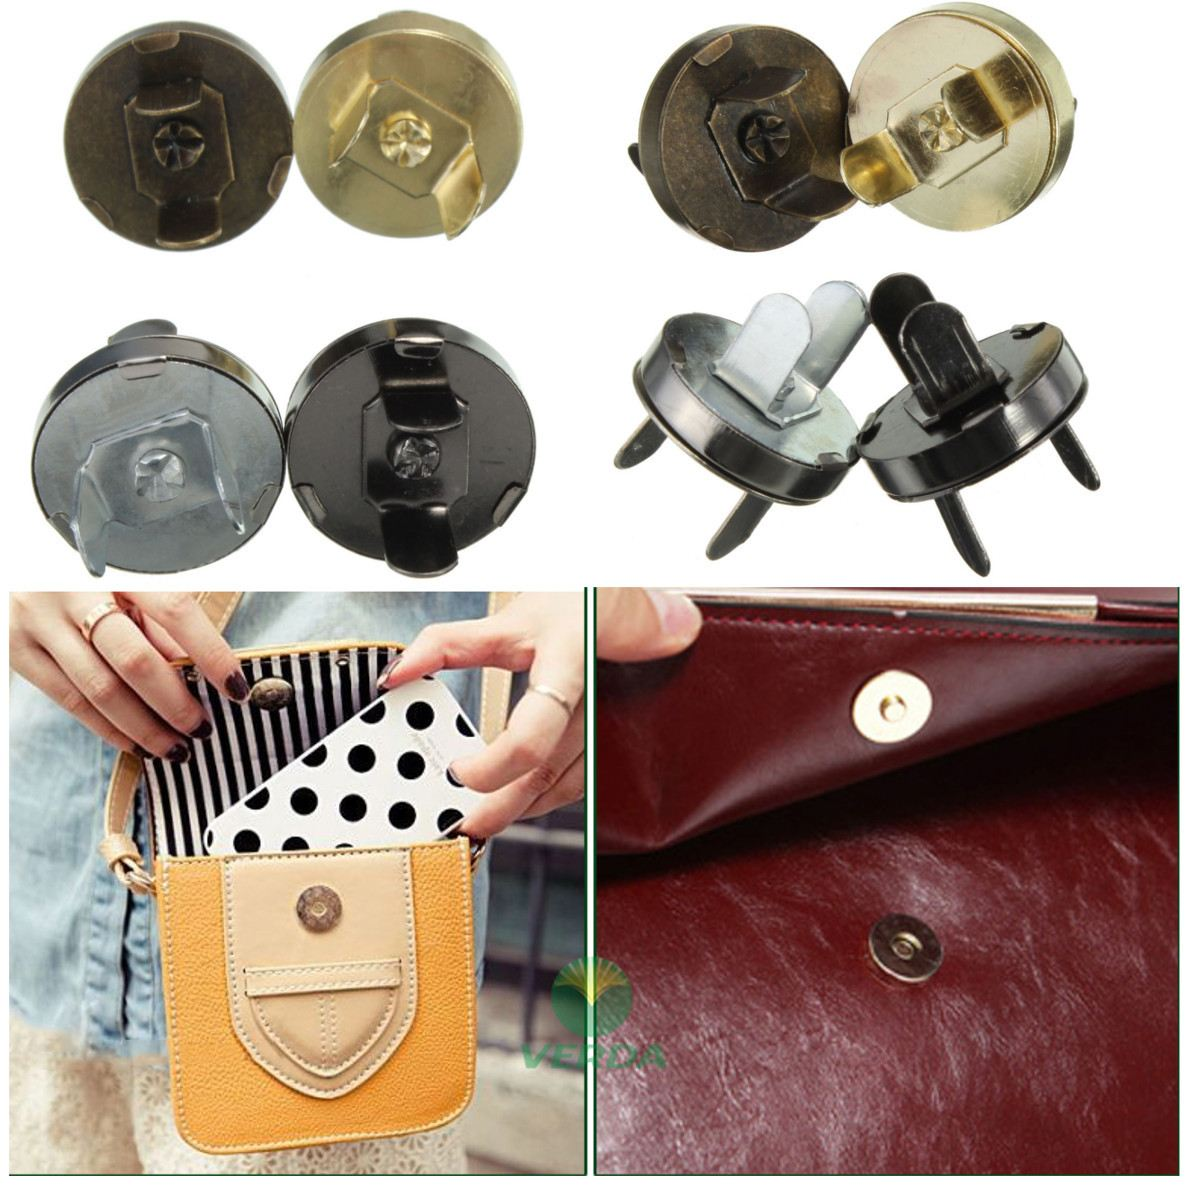 5pc/lot 18MM Magnetic Snap Fasteners Clasps Snap Buttons Purse Wallet Bags Parts Accessories Handbag DIY Replacement Accessories монтировка rennsteig re 2758002